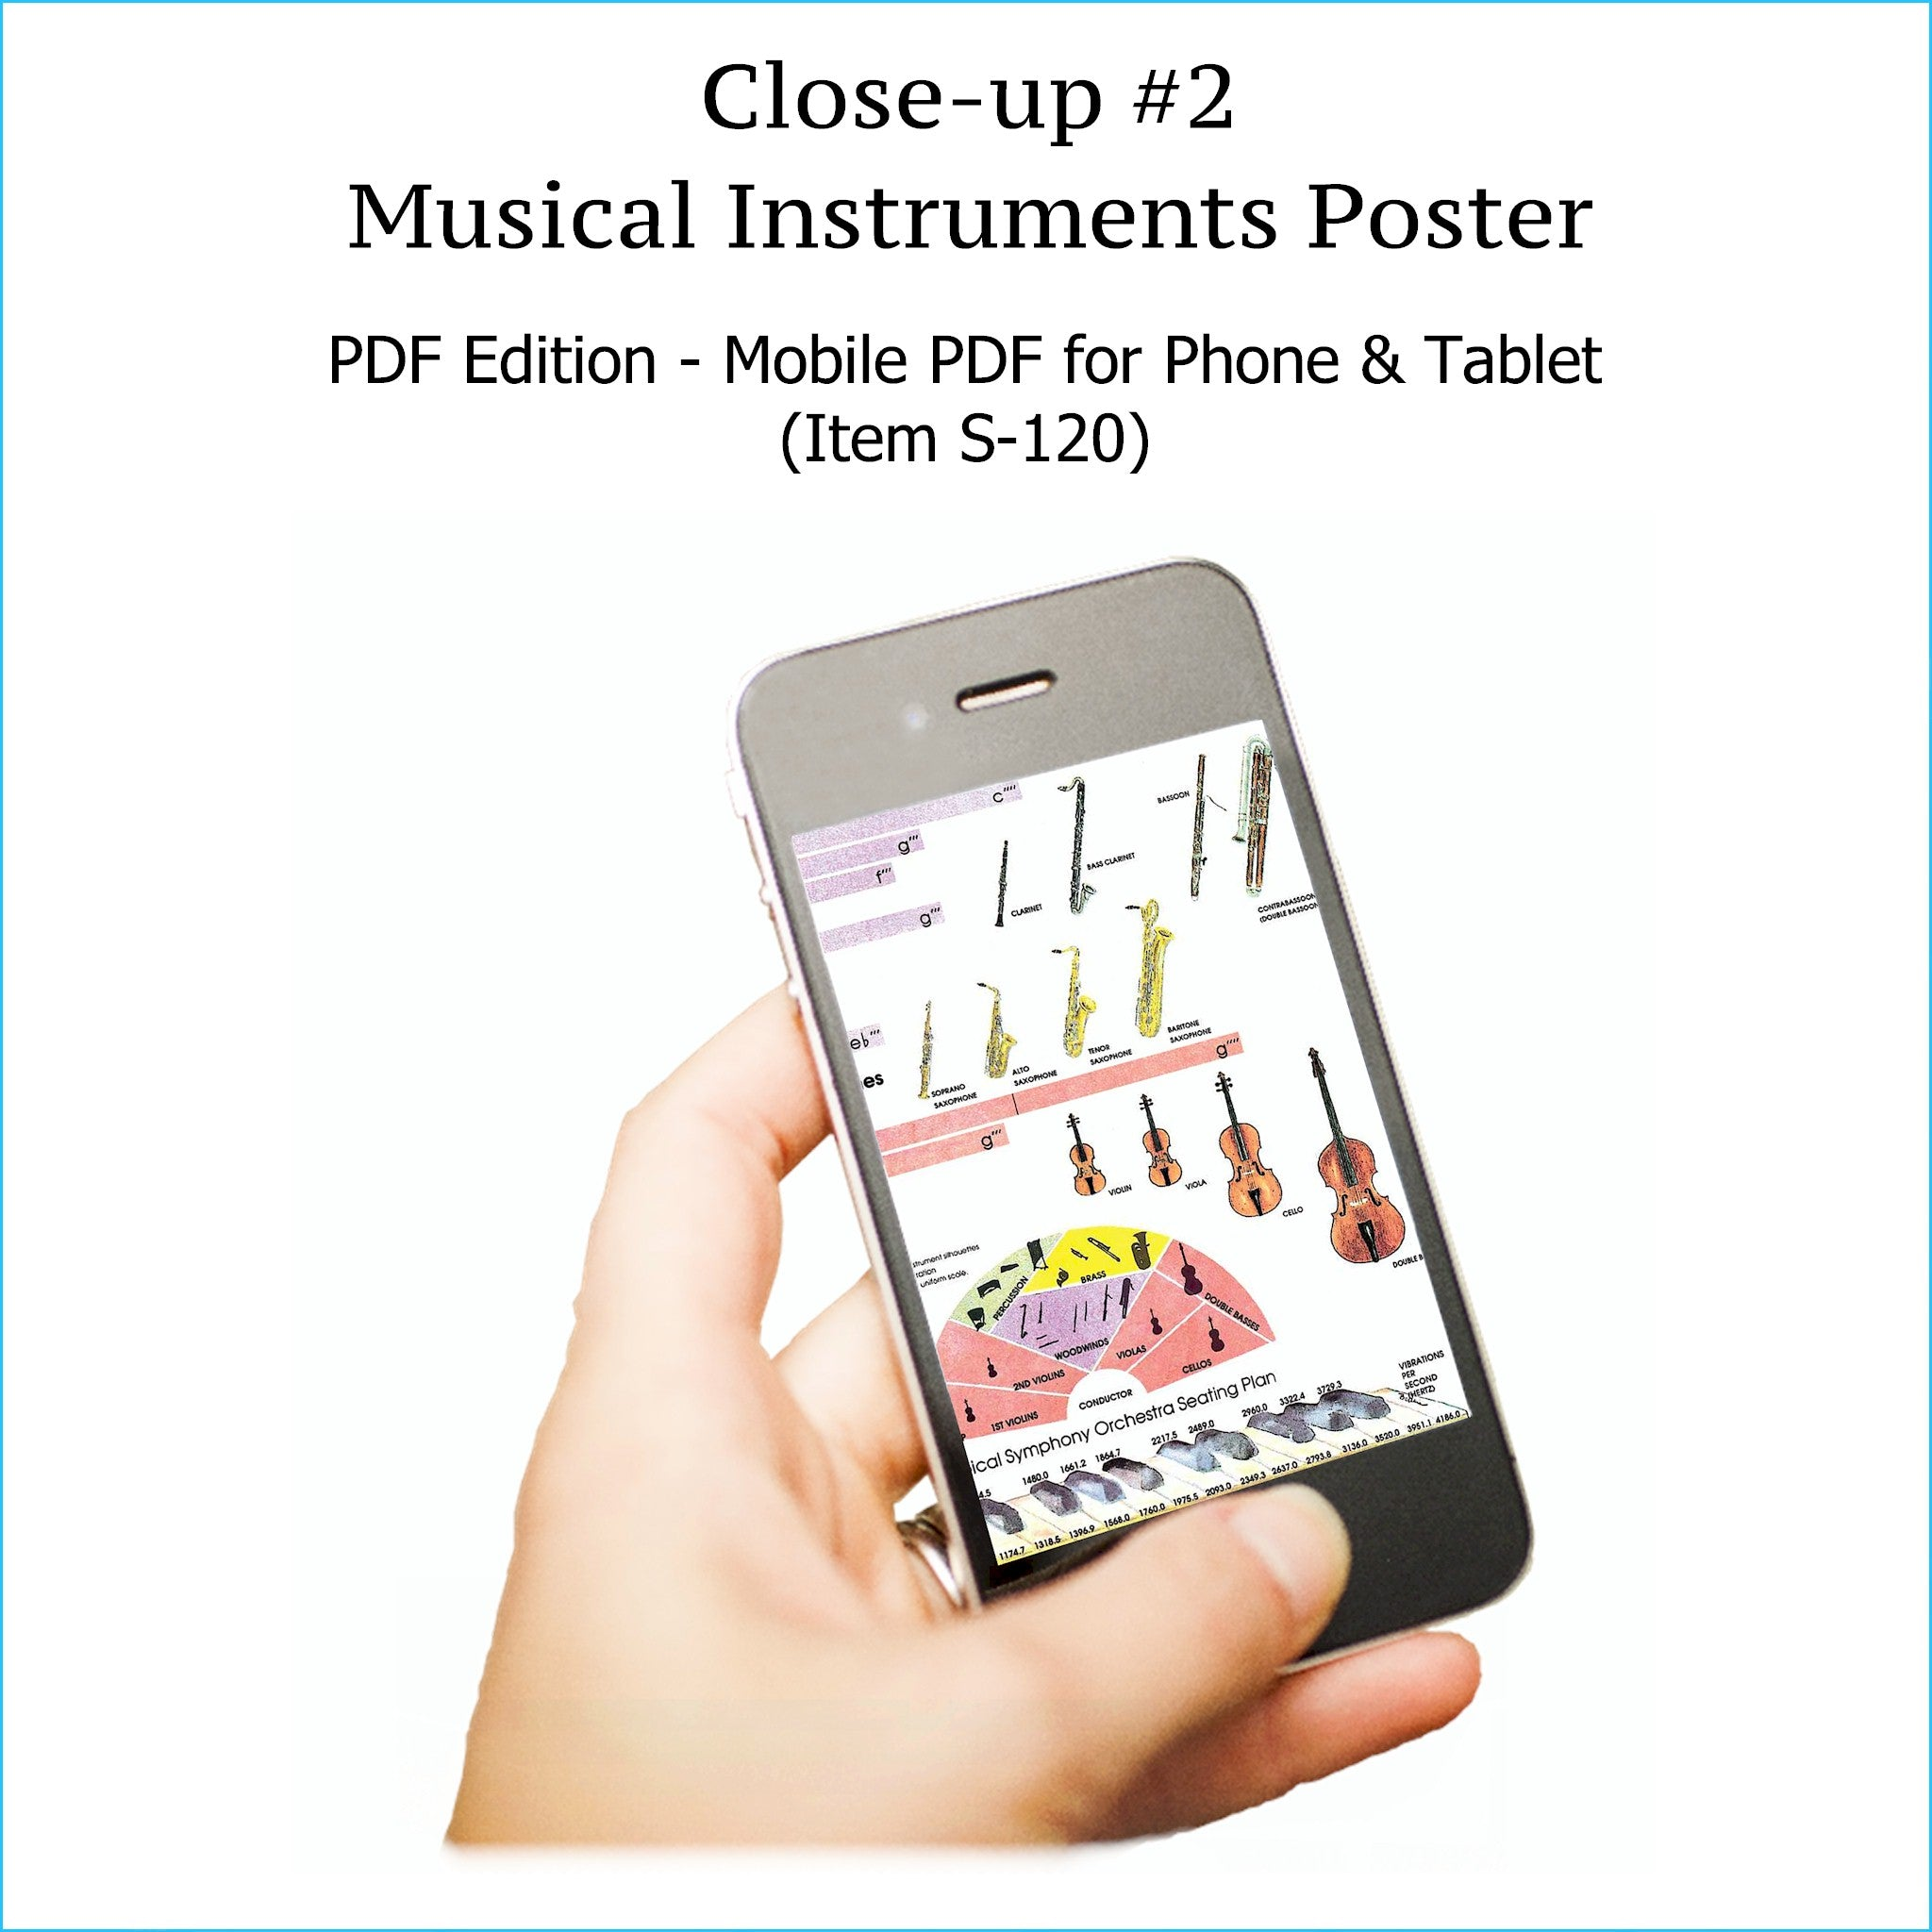 Item S-120: Musical Instruments Poster on a SINGLE SCREEN. Zoom In or Out Like a Google Map. Provides Info for Creating, Arranging, & Mixing. FREE Download Protection.